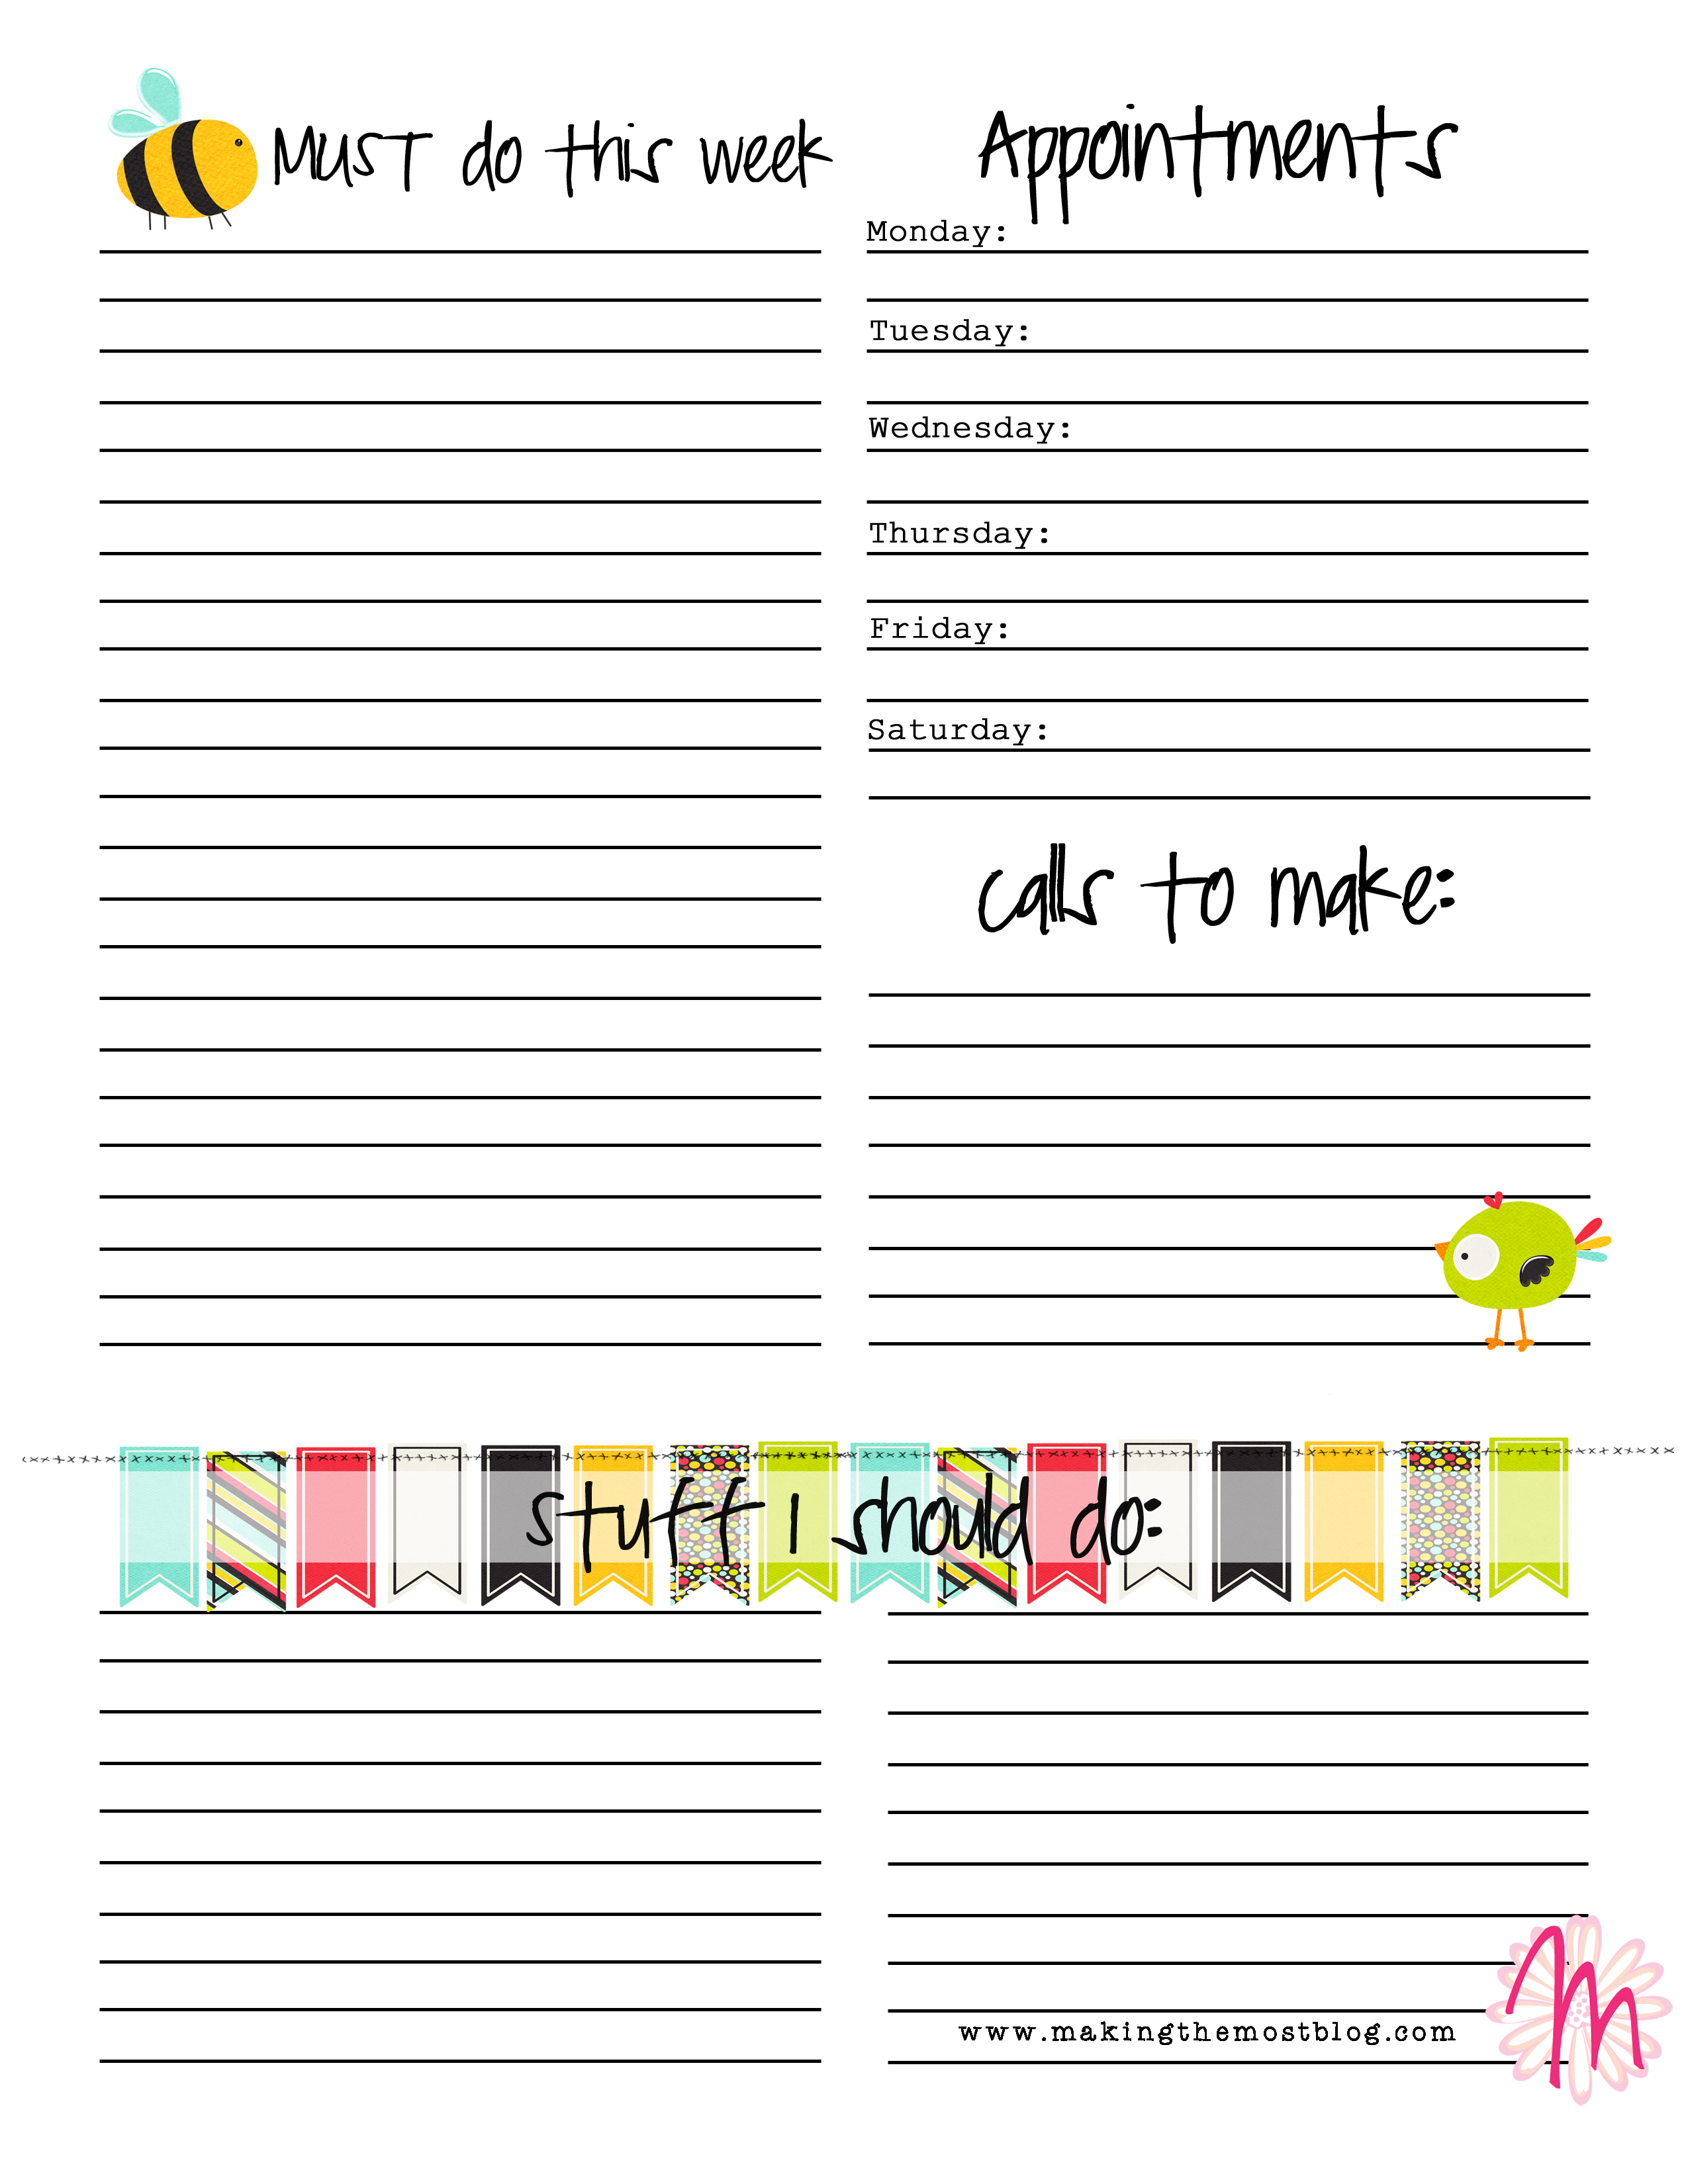 Free Daily Planning Worksheet Printable | Making the Most Blog